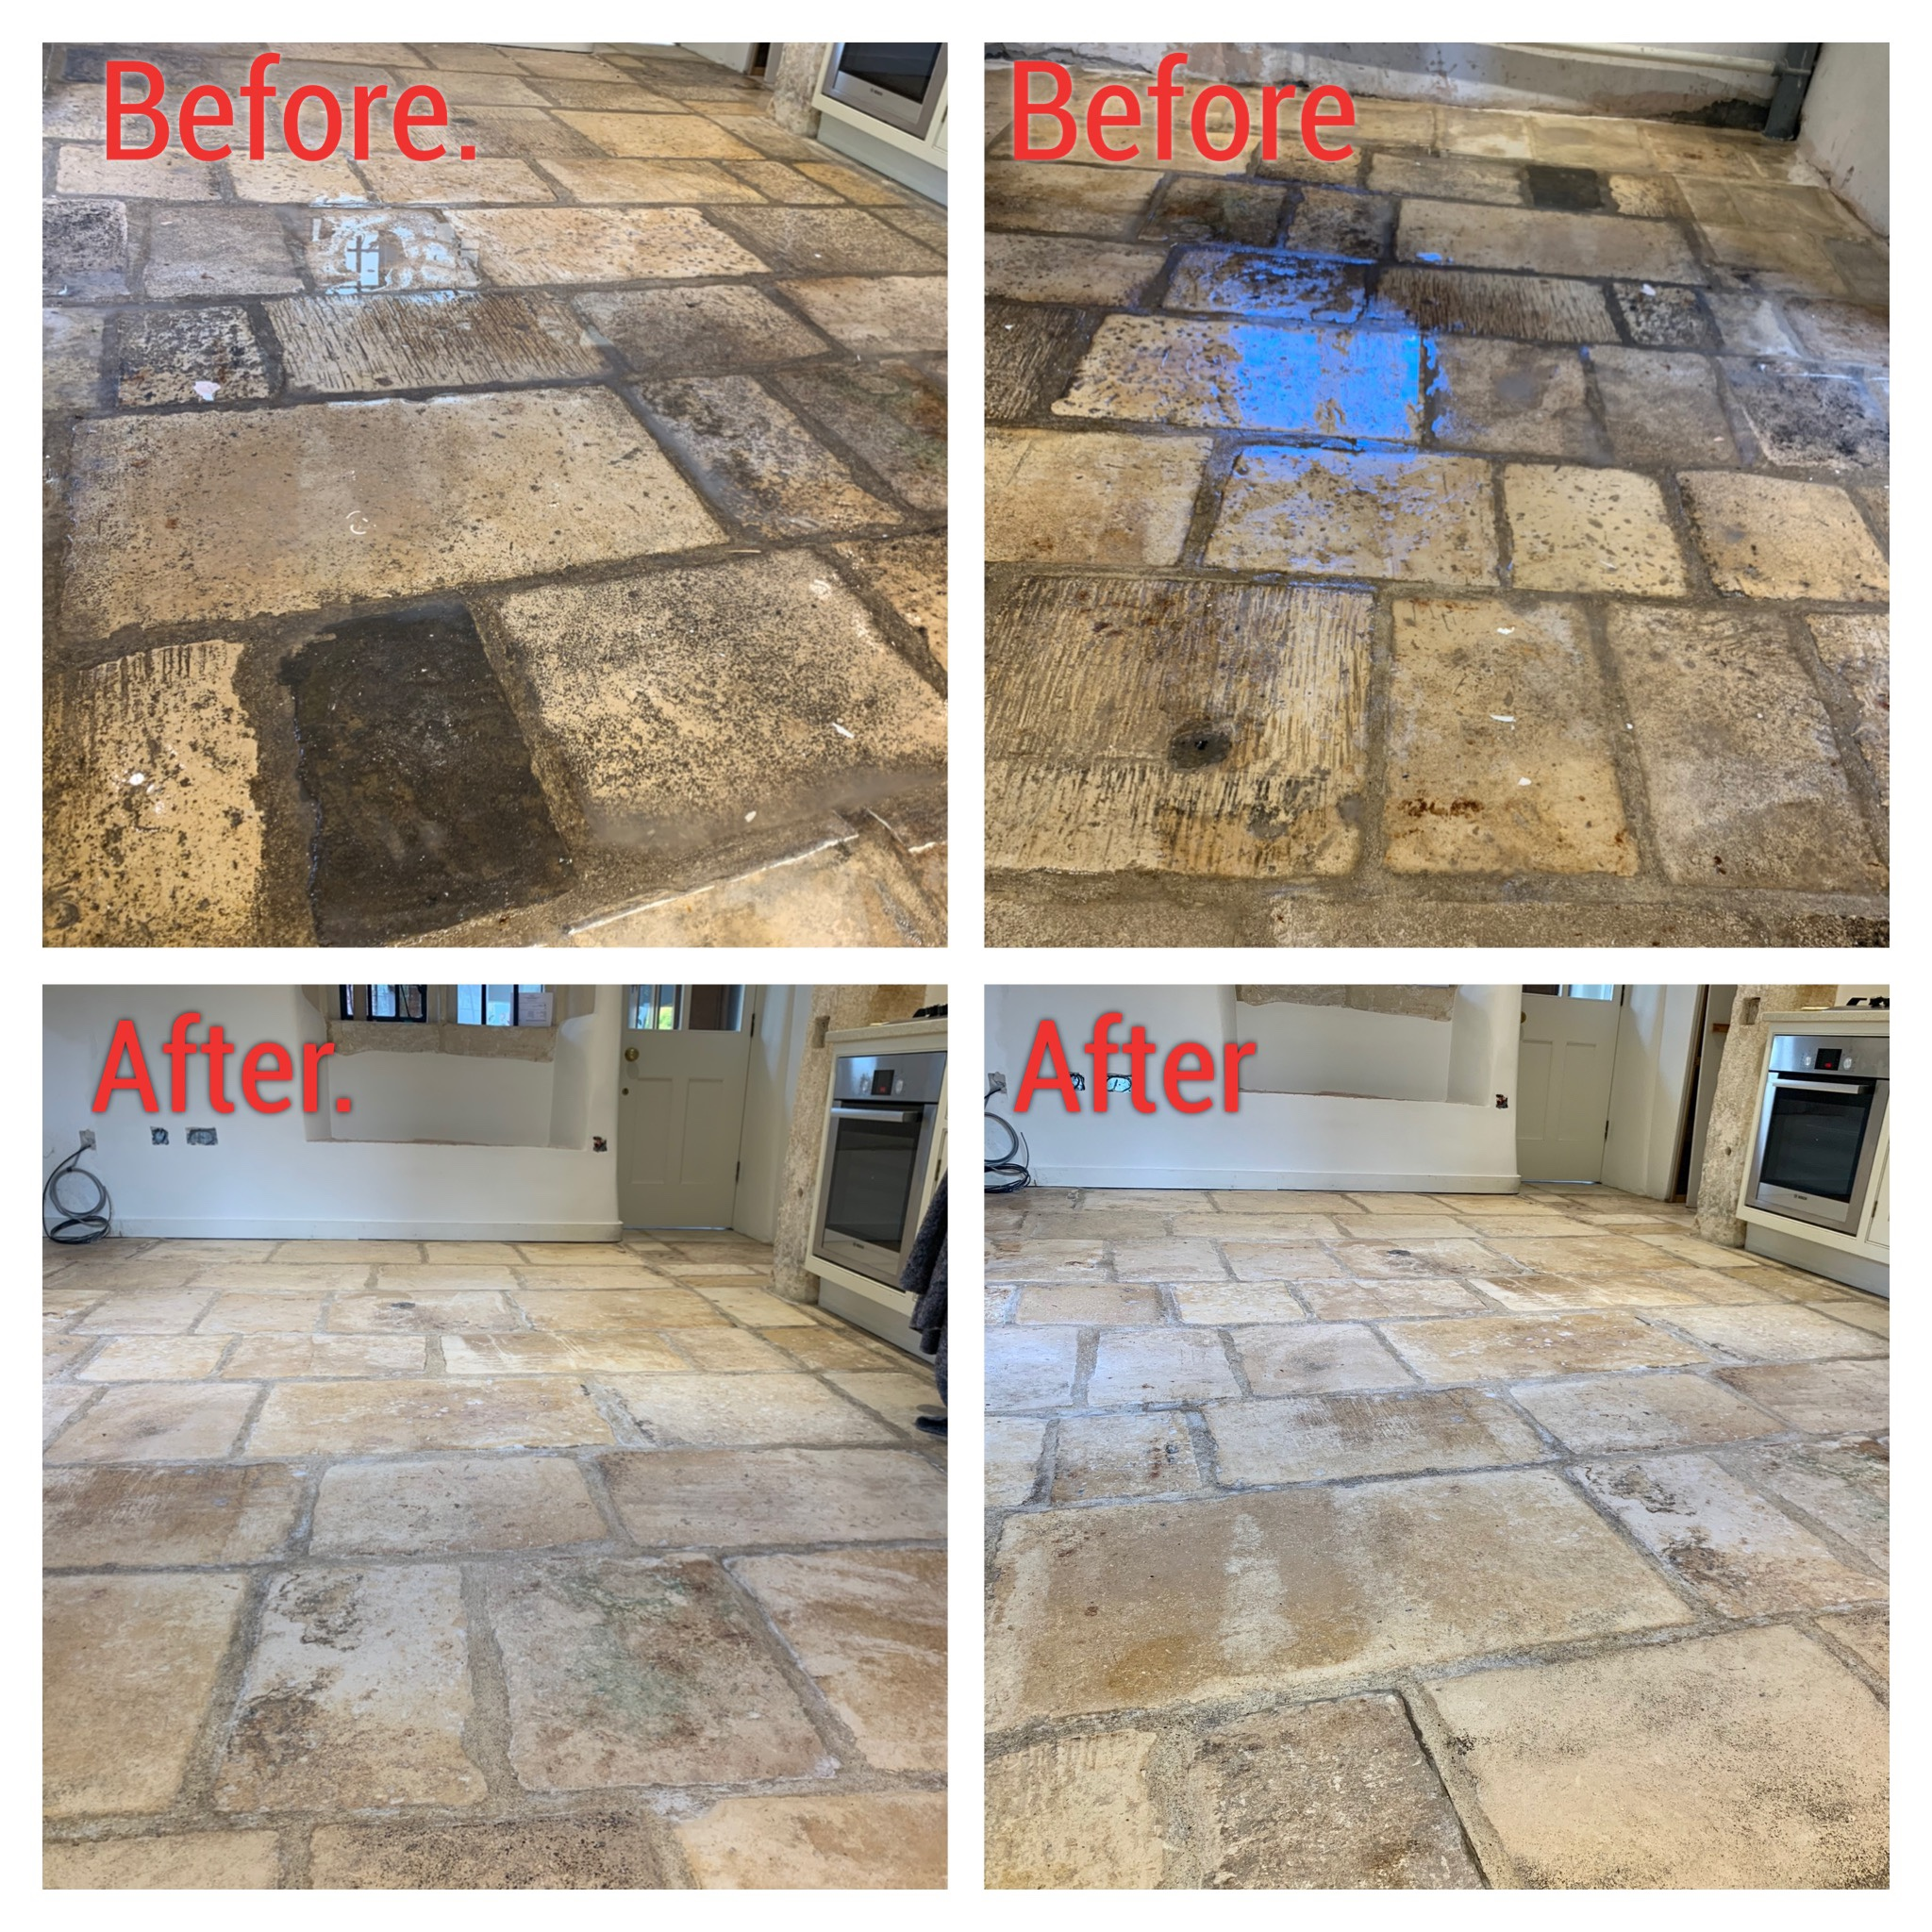 Flagstone restoration before and after pictures